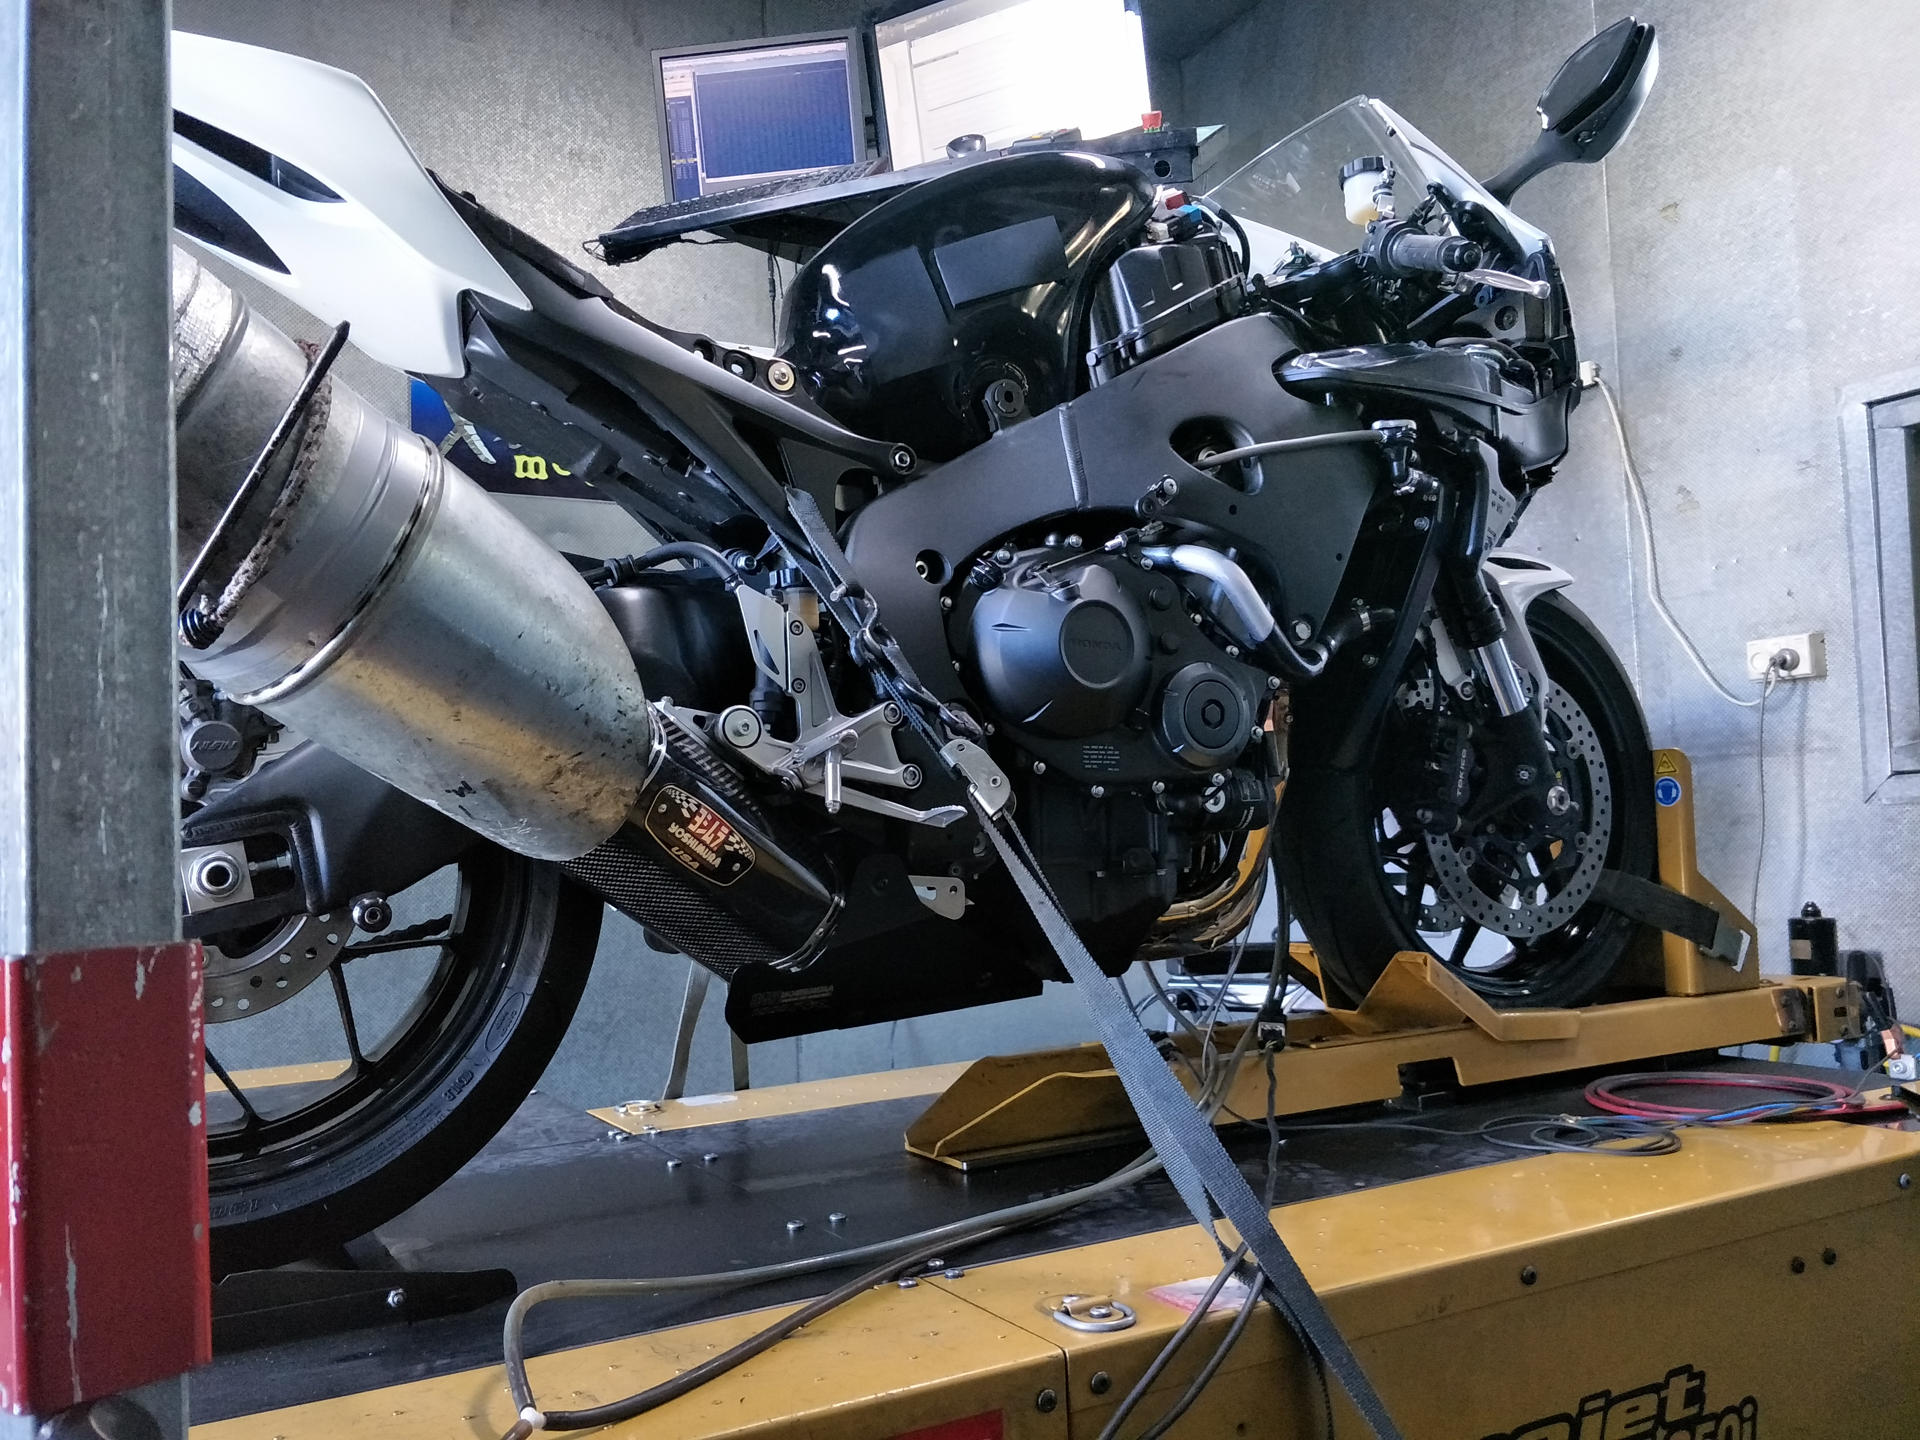 Dyno Tuning Article Part IV